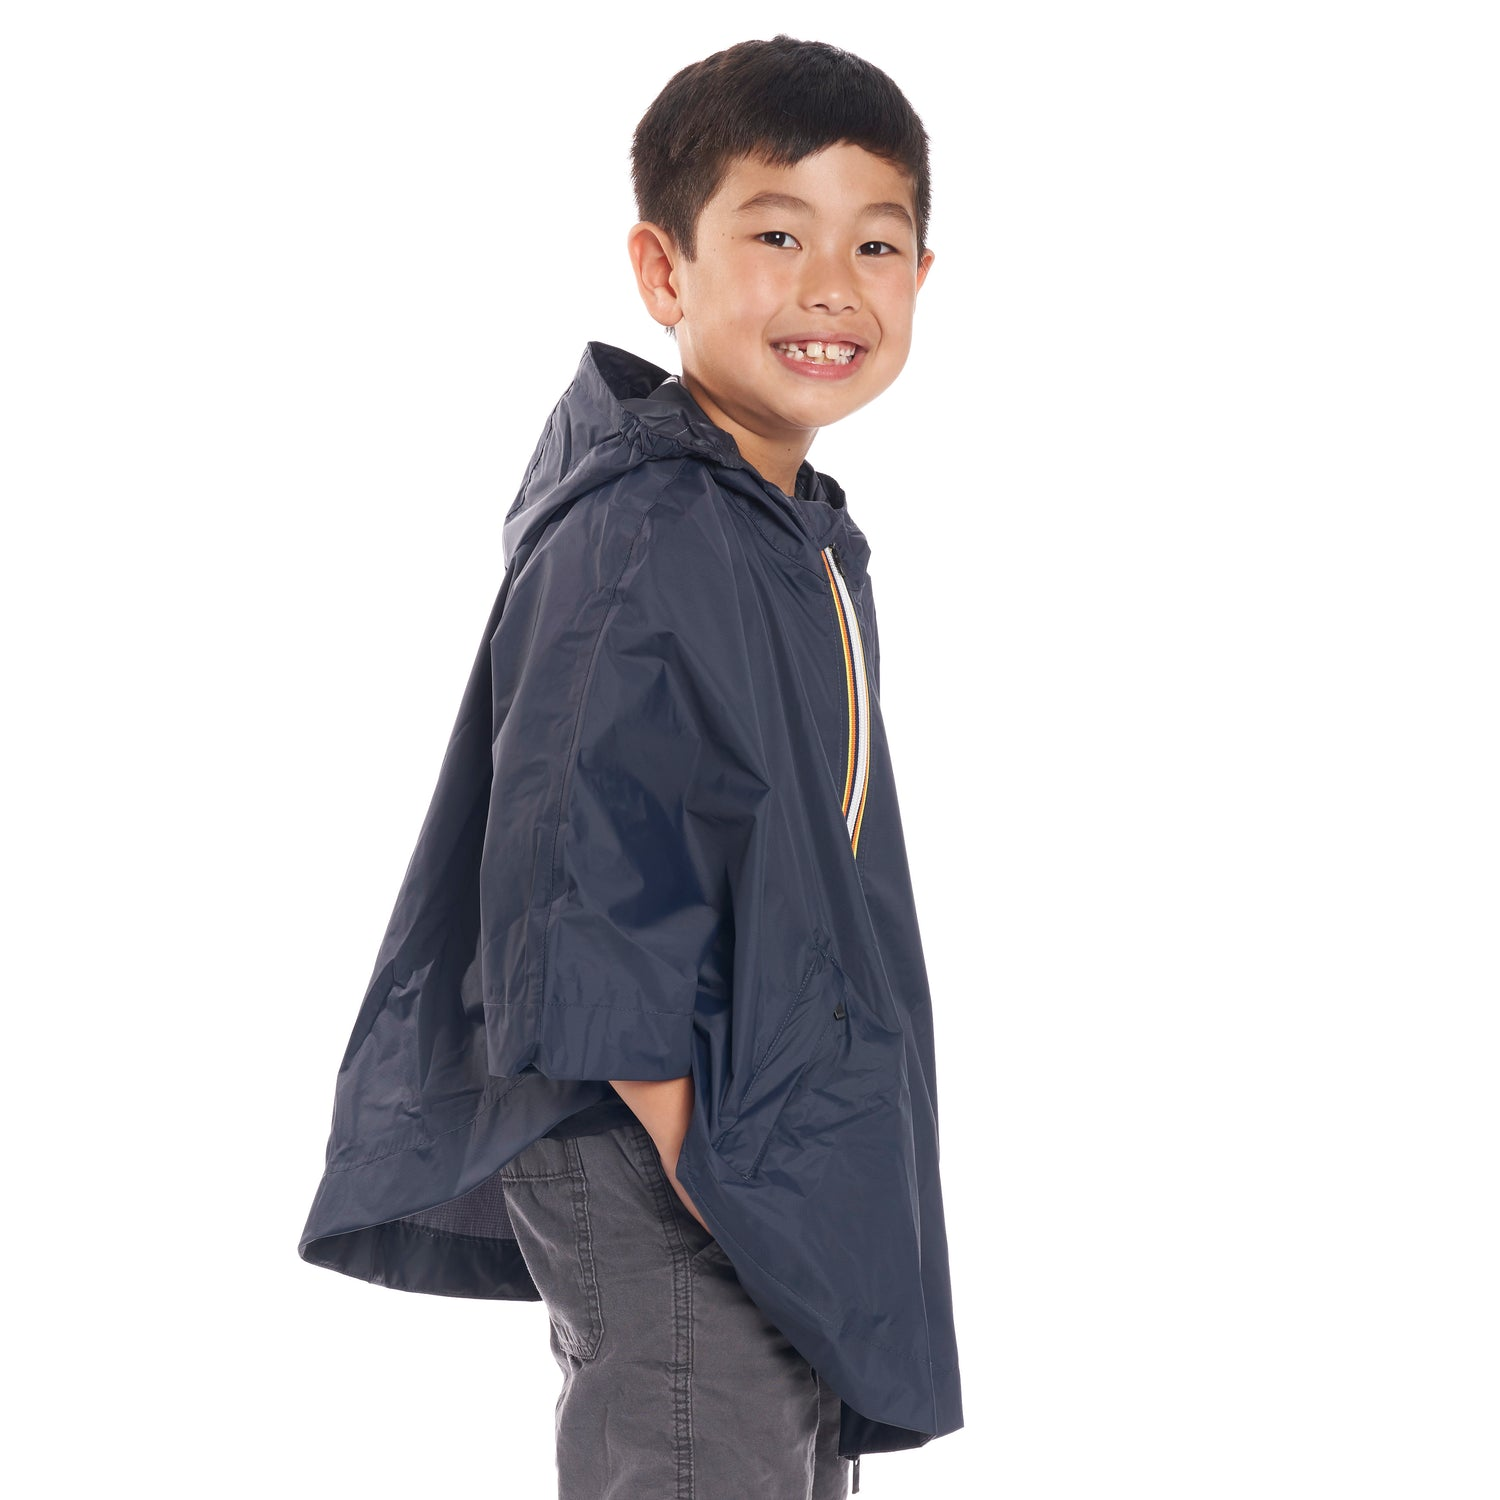 Kids Le Vrai 3.0 Morgan Poncho Blue Depth - Side